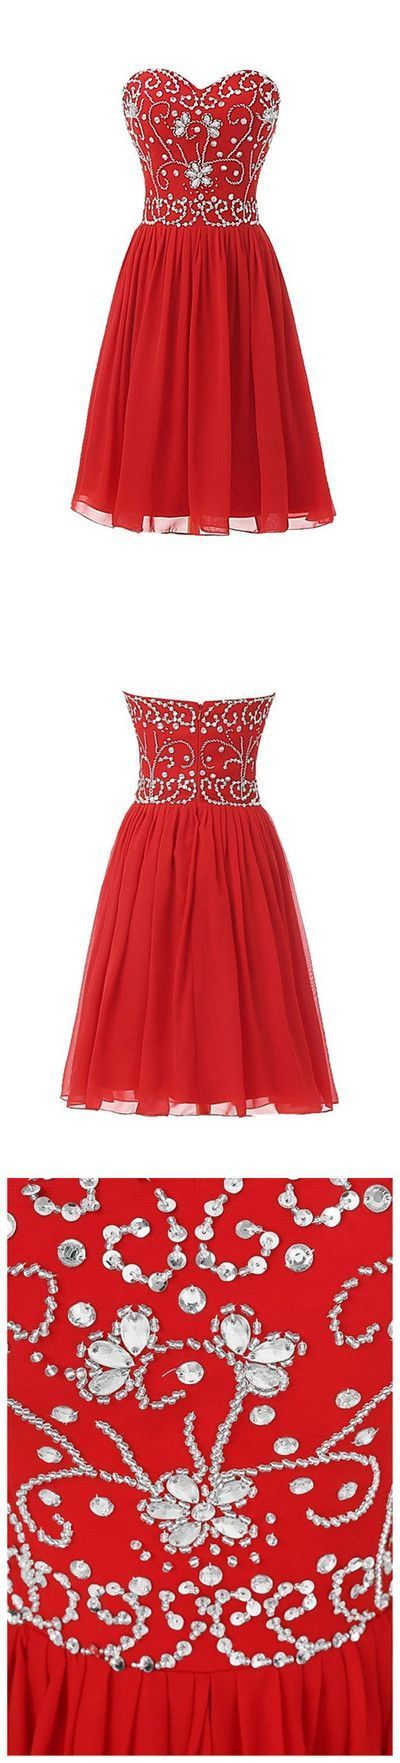 Stylish Beaded Prom Dress, Sweetheart neck Red Short Homecoming Dress